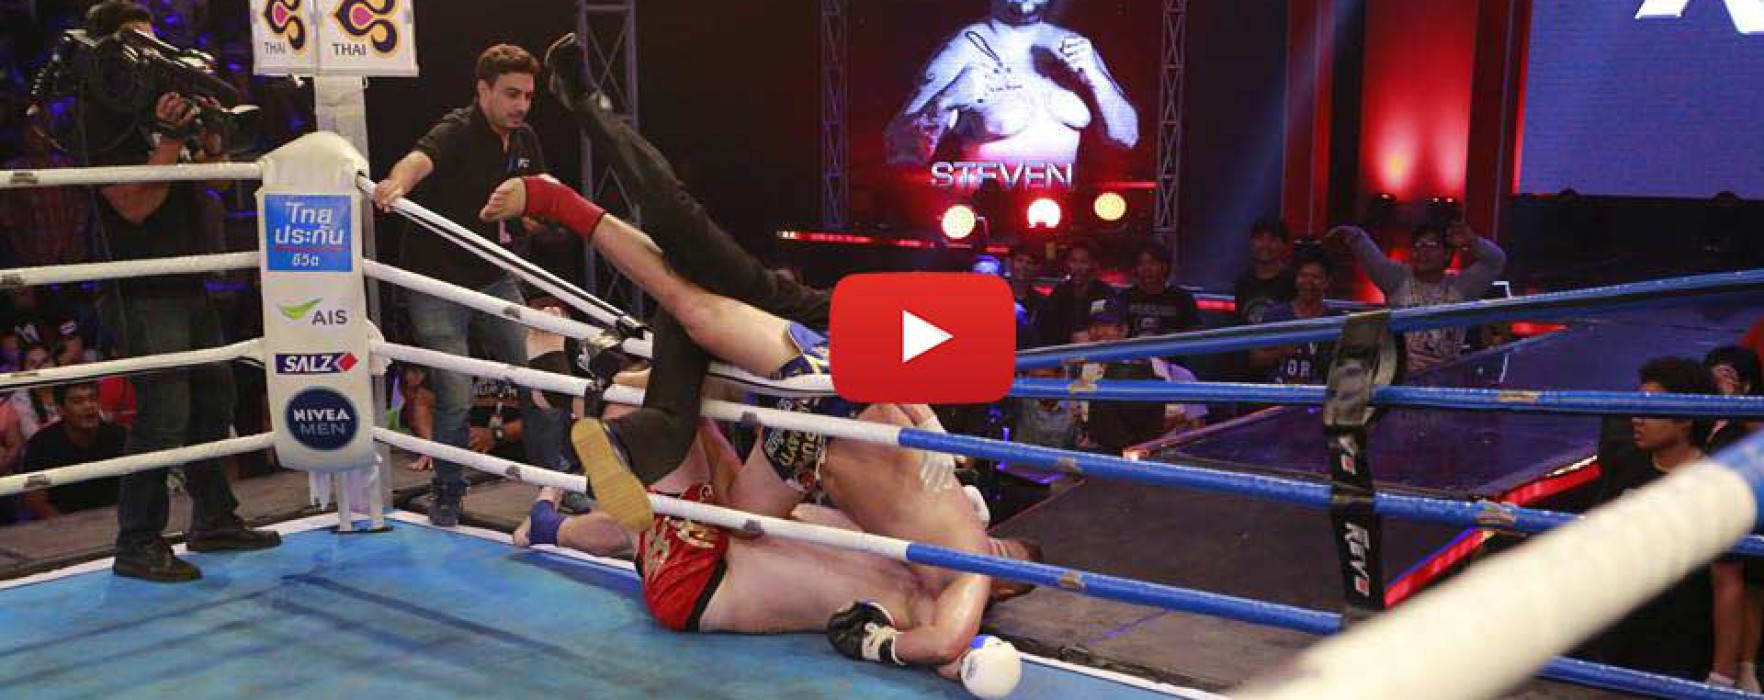 Video: Steven Bank vola fuori dal ring e fa decollare l'audience TV – Super Muay Thai